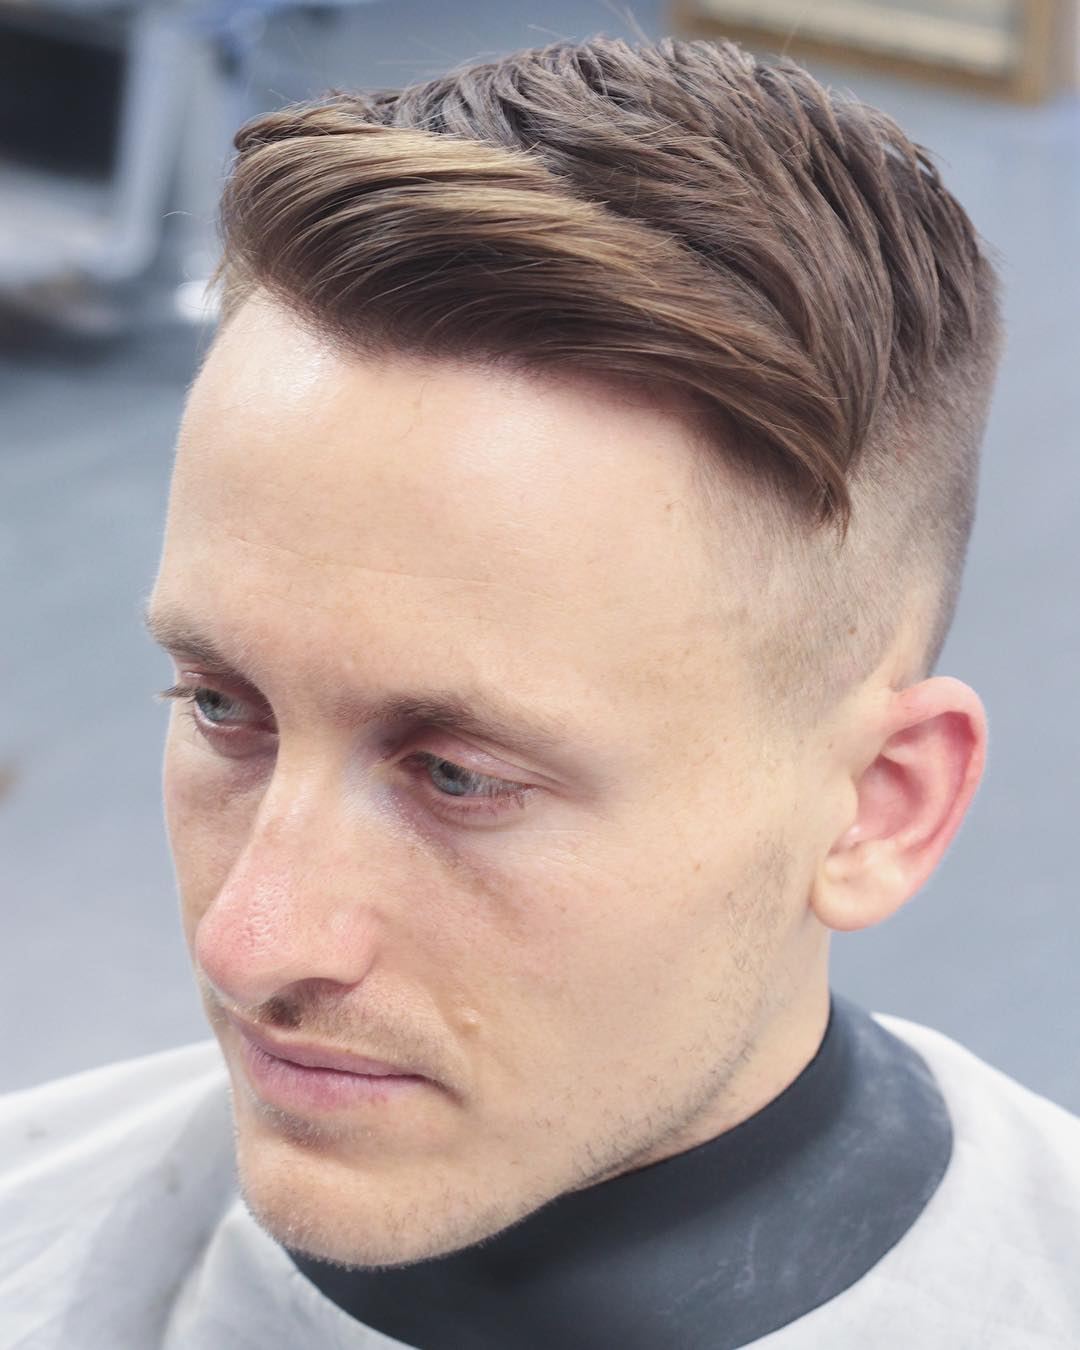 42 New Fade Haircuts For Men Cool Mens Hairstyles Haircuts 2018